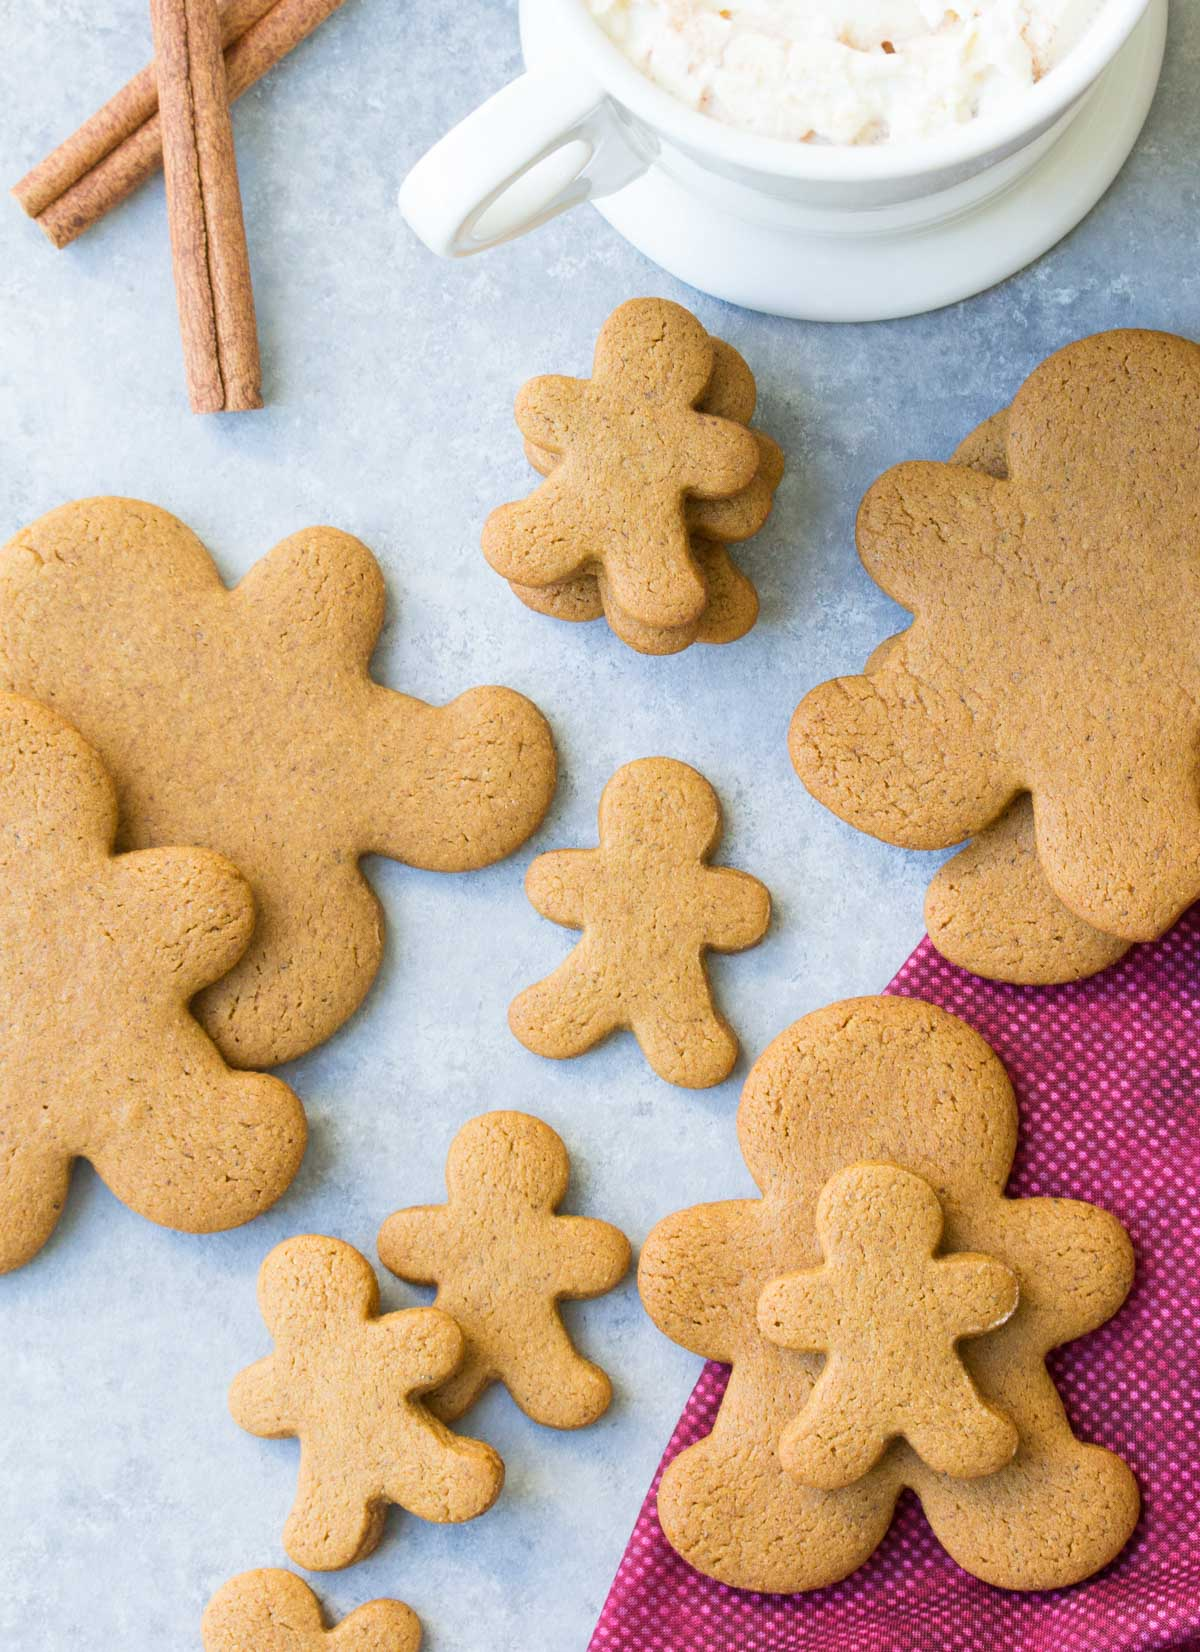 Our FAVORITE gingerbread cookie recipe! Perfectly spiced, soft cookies made with whole wheat flour and less sugar so they're healthier. | www.kristineskitchenblog.com